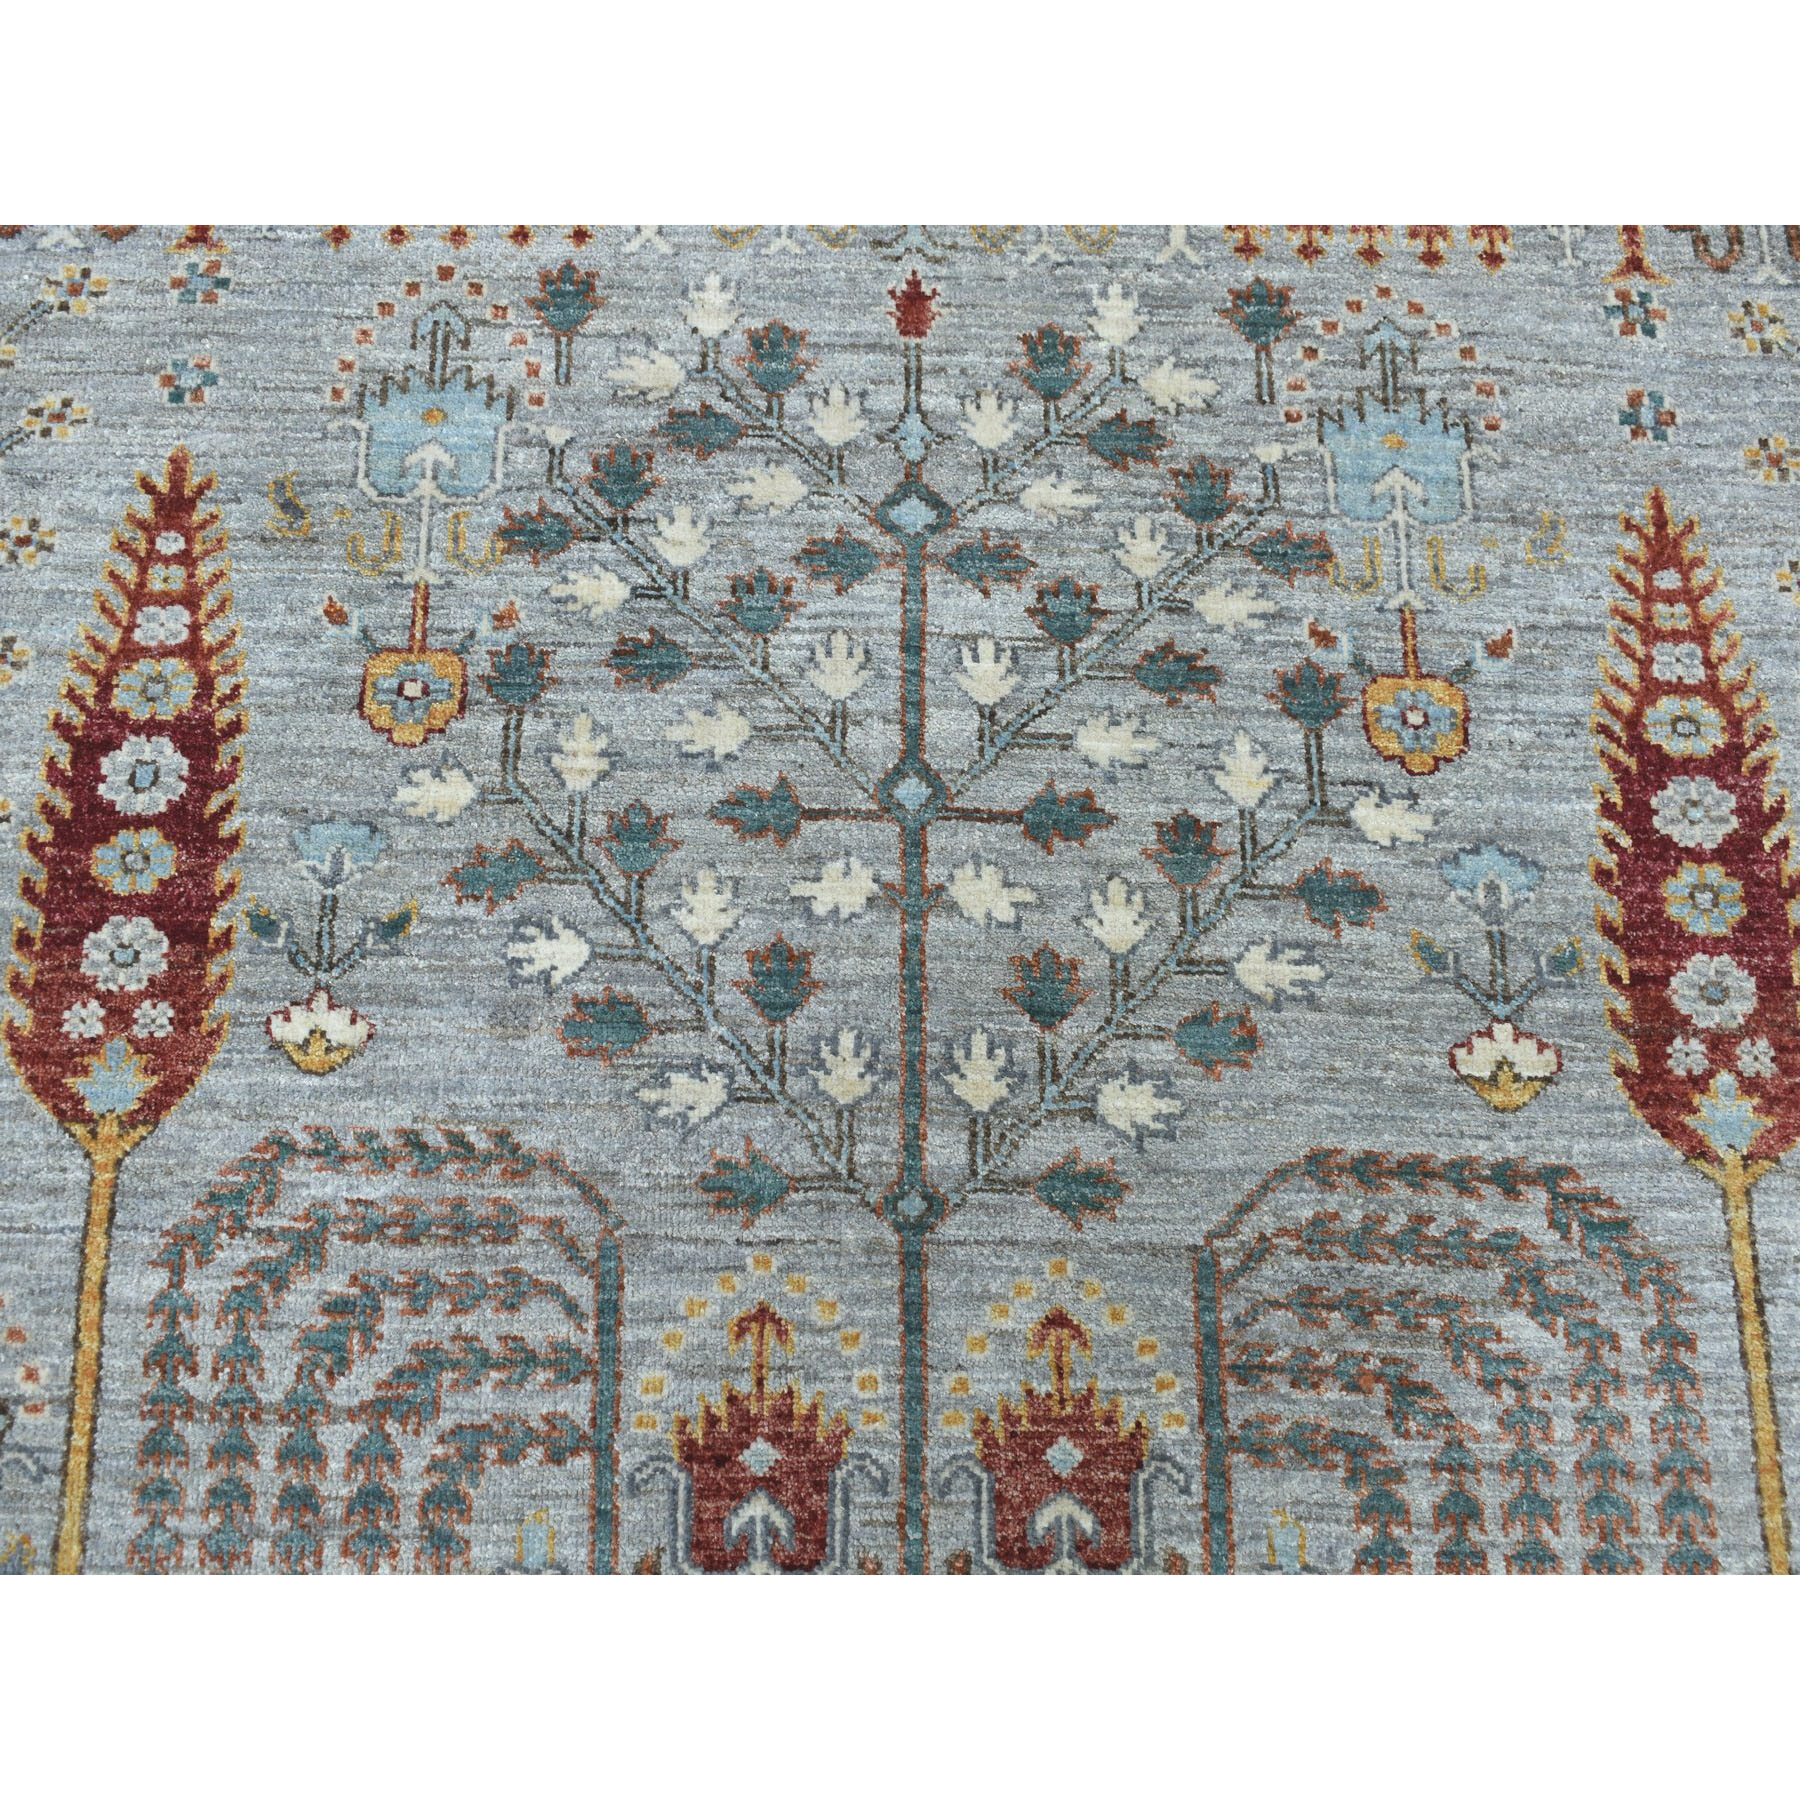 10-2 x14- Gray Peshawar Willow And Cypress Tree Design Hand-Knotted Oriental Rug